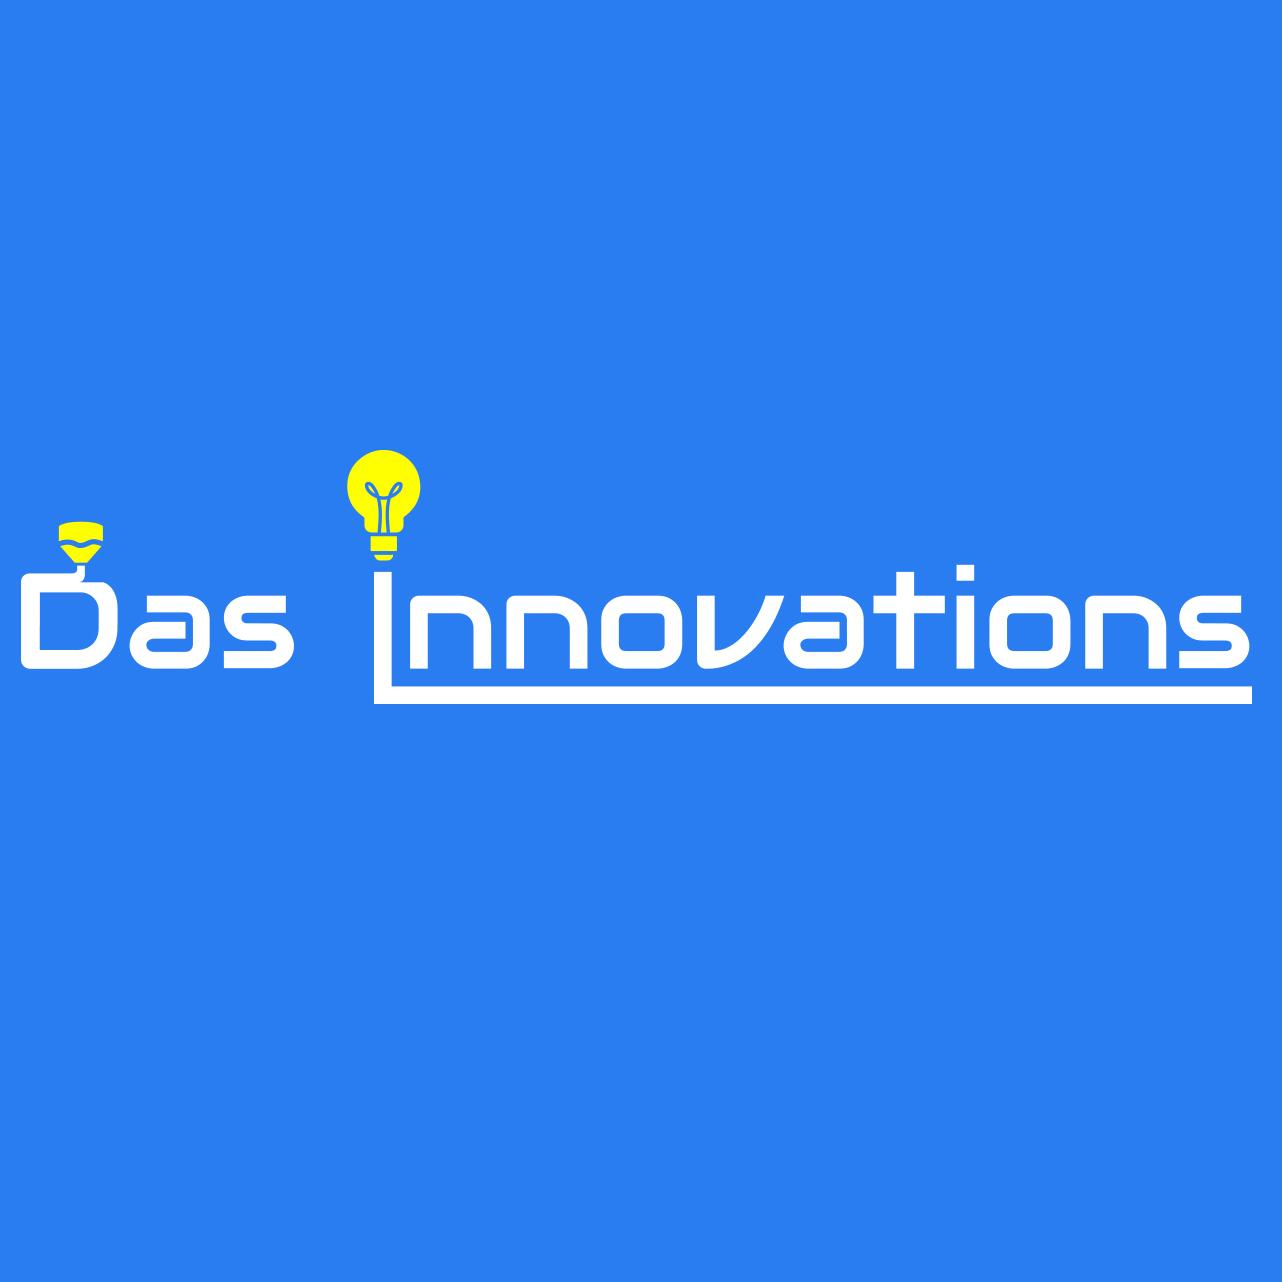 Das Innovations